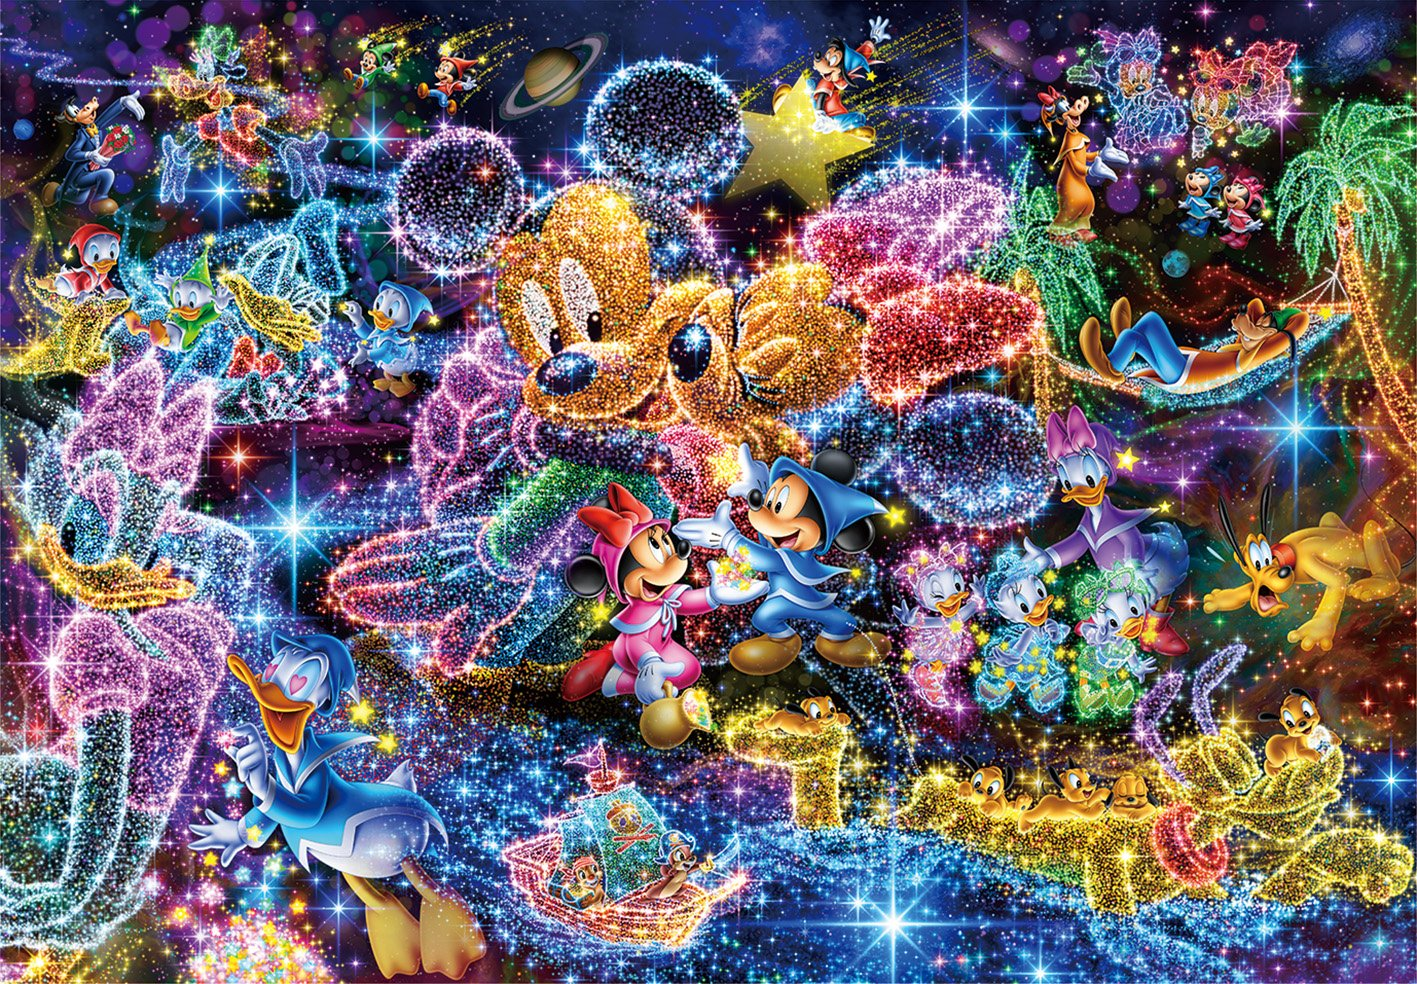 Tenyo (DS-771) Disney Stained Art Wishing to Starry Sky Jigsaw Puzzle (1000 Piece) by Tenyo